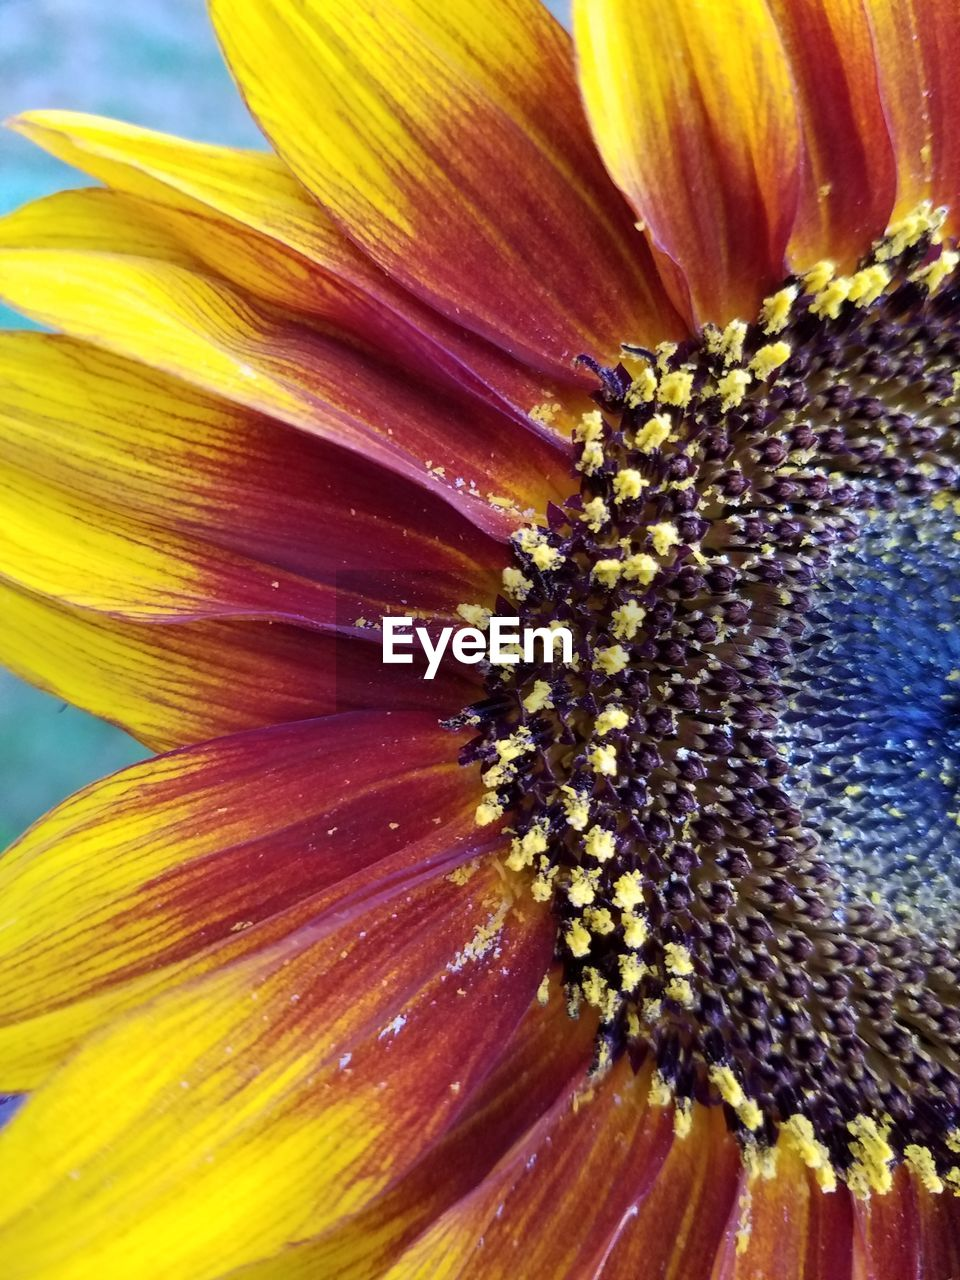 freshness, flower, flowering plant, flower head, close-up, beauty in nature, inflorescence, pollen, vulnerability, petal, fragility, plant, growth, no people, yellow, nature, stamen, full frame, natural pattern, sunflower, softness